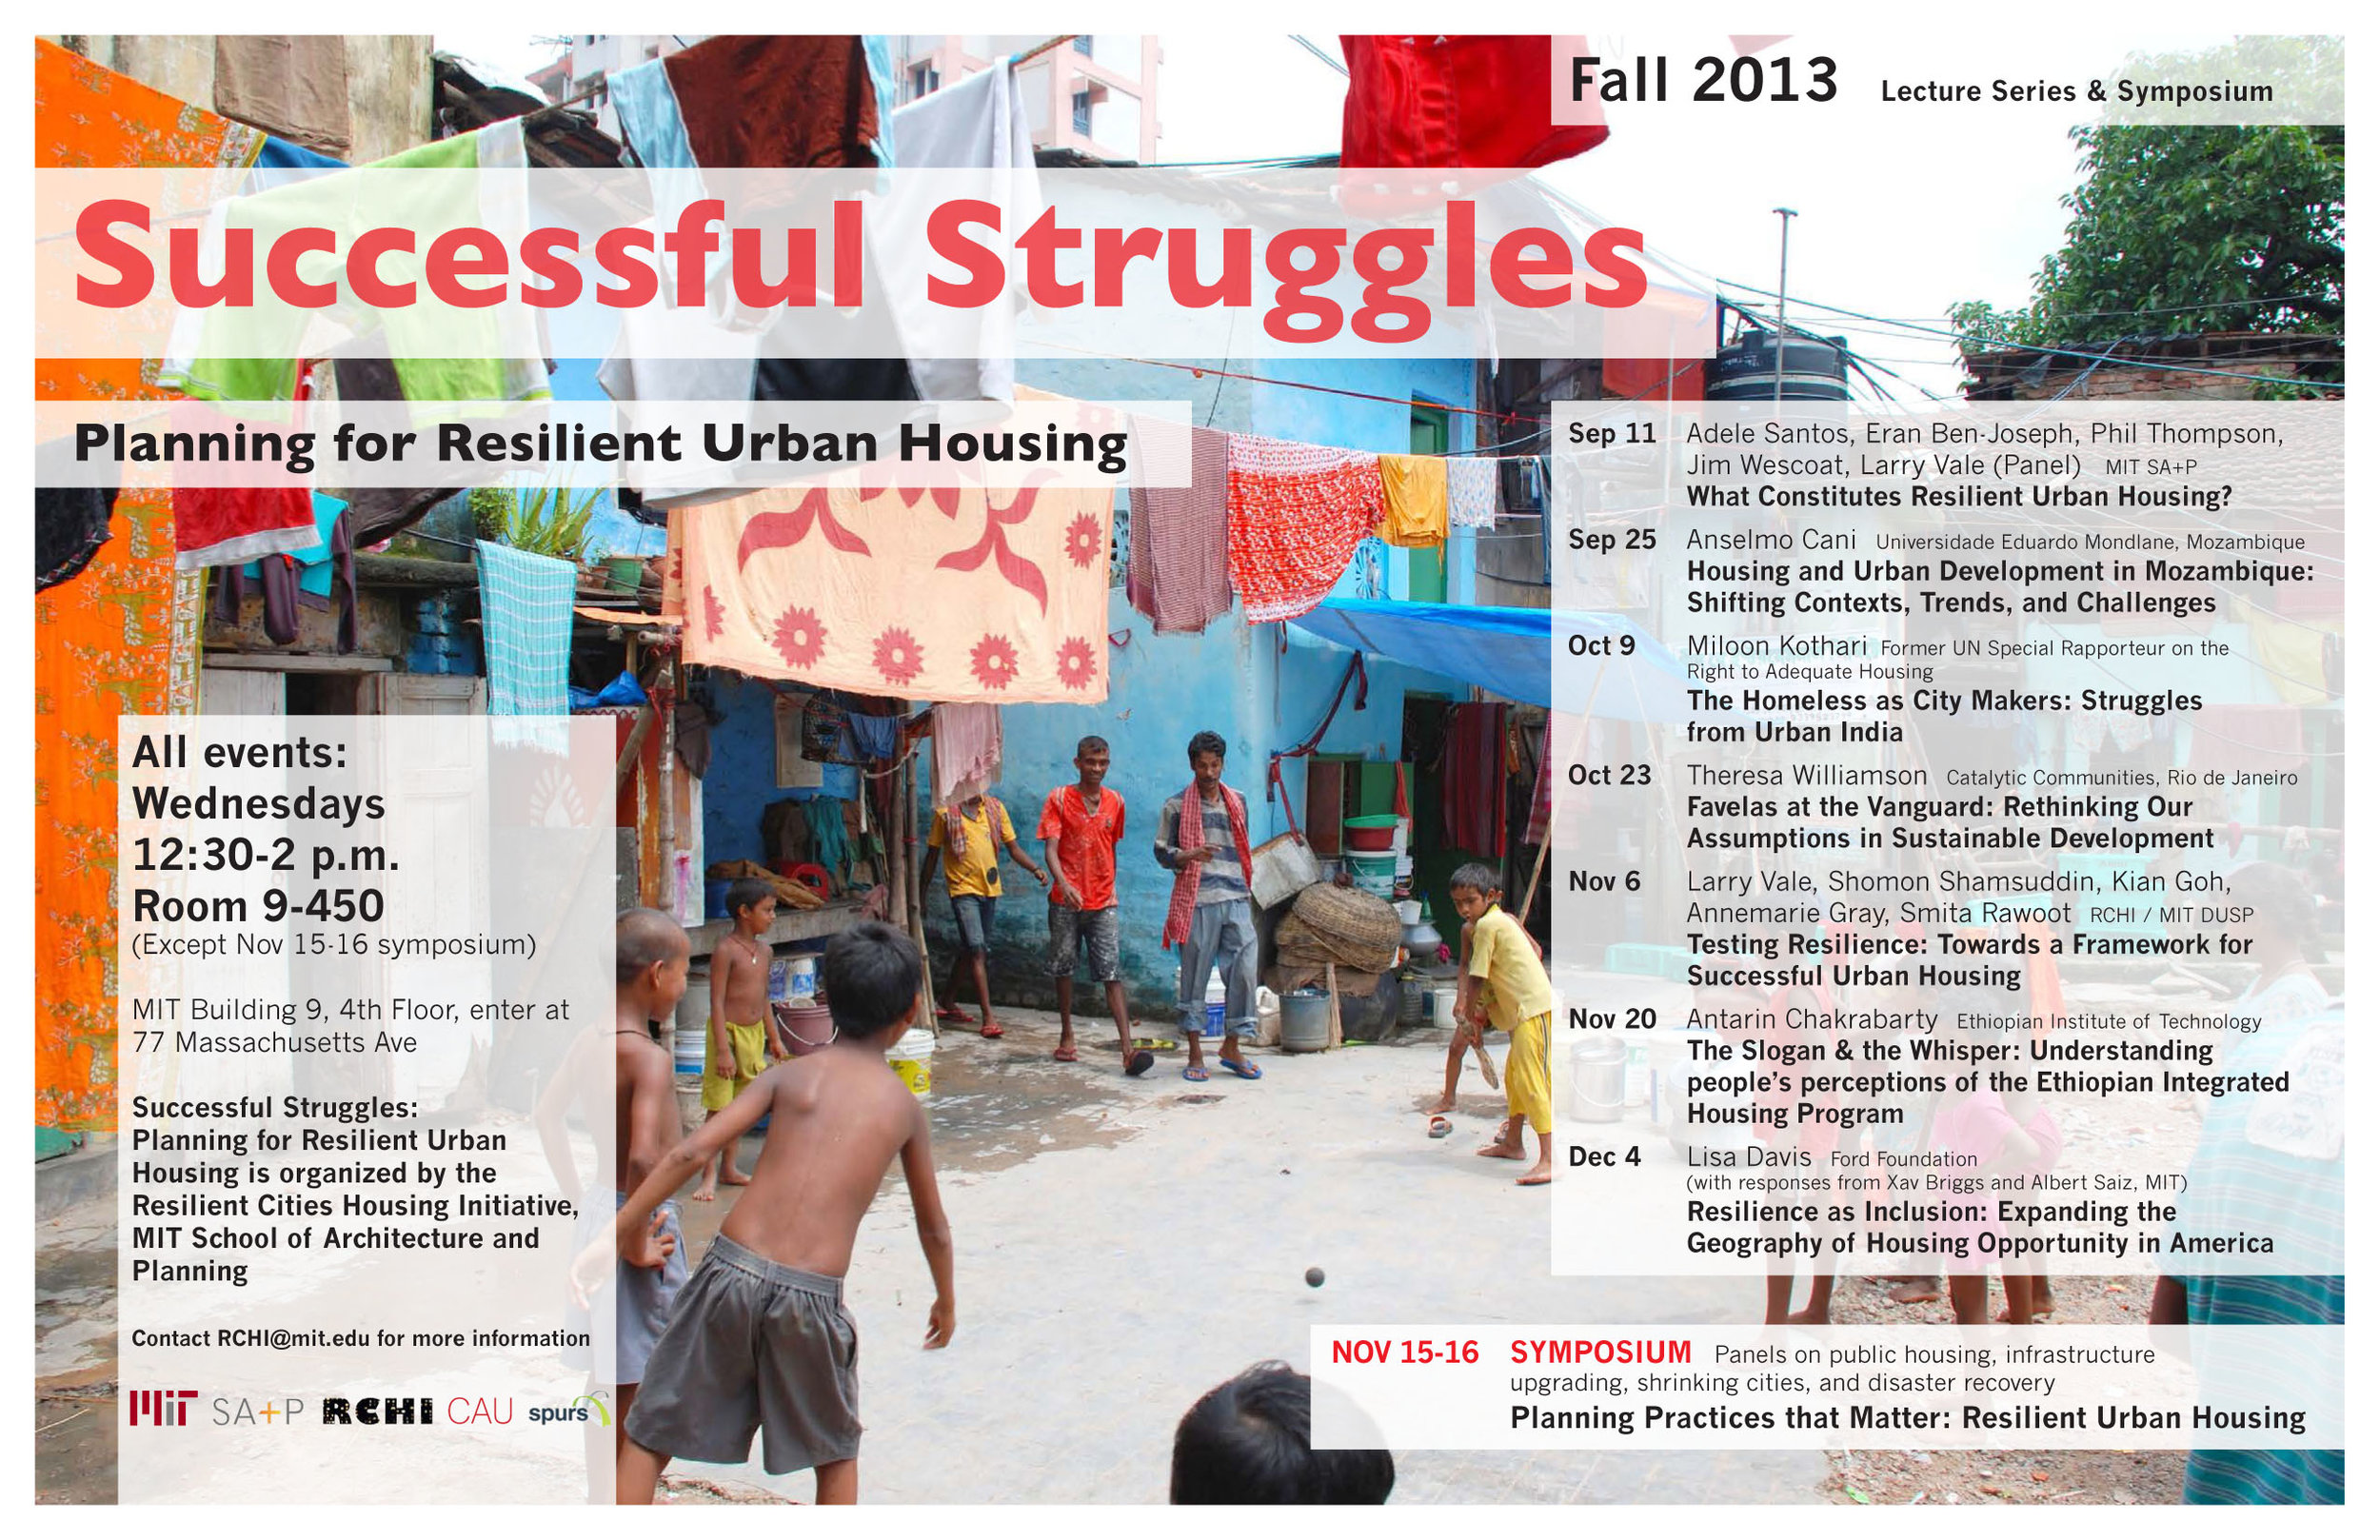 rchi-lecture-series-poster-20131021.jpg